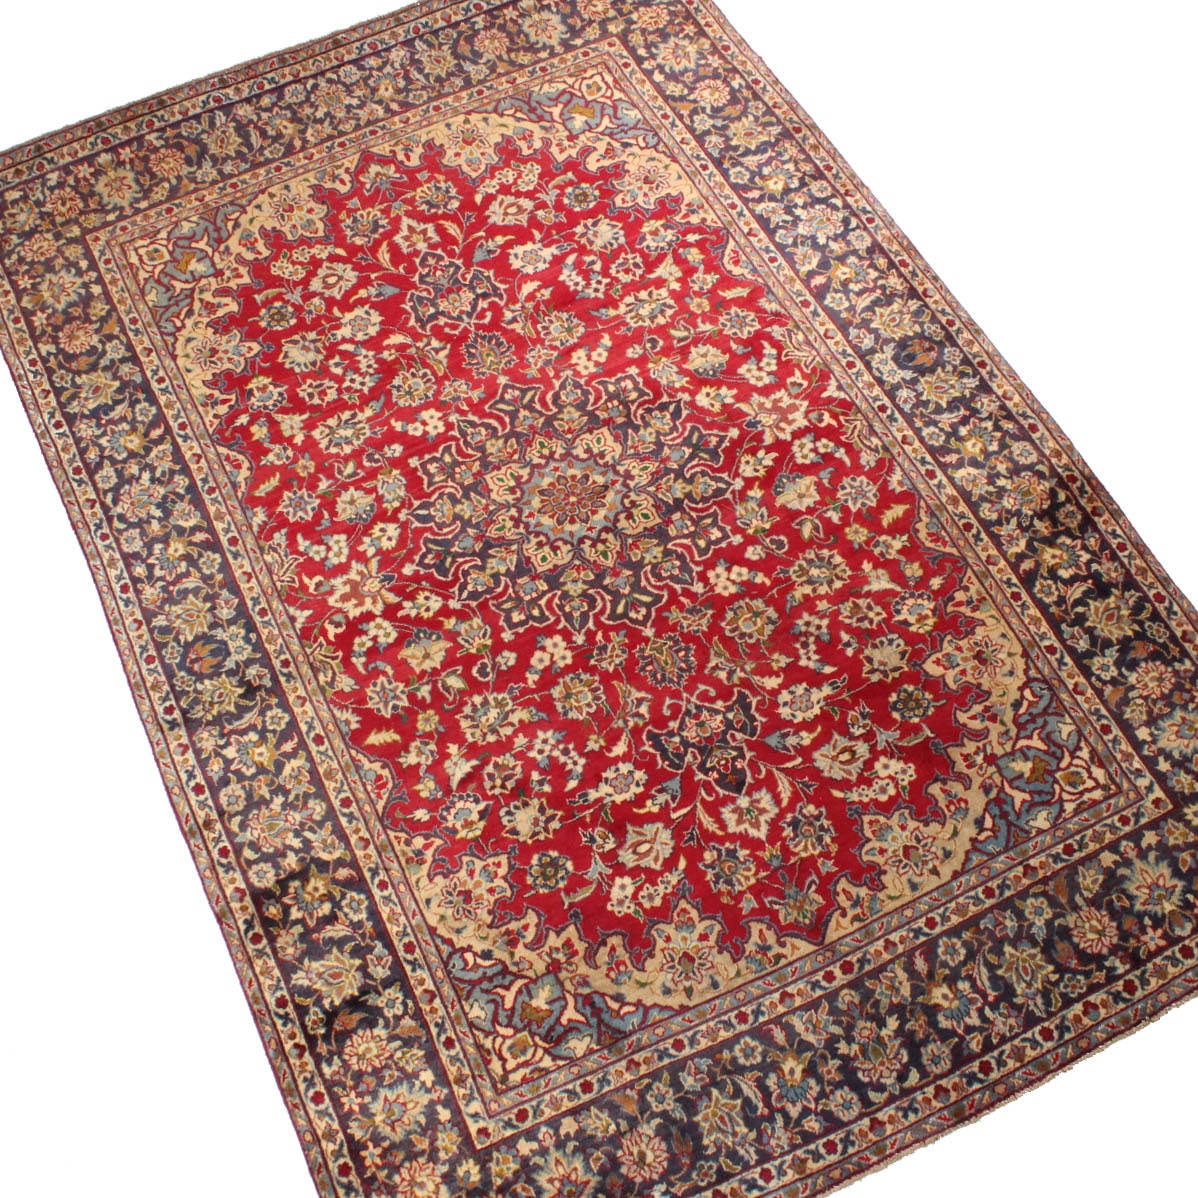 Hand-Knotted Persian Isfahan Room Size Area Rug